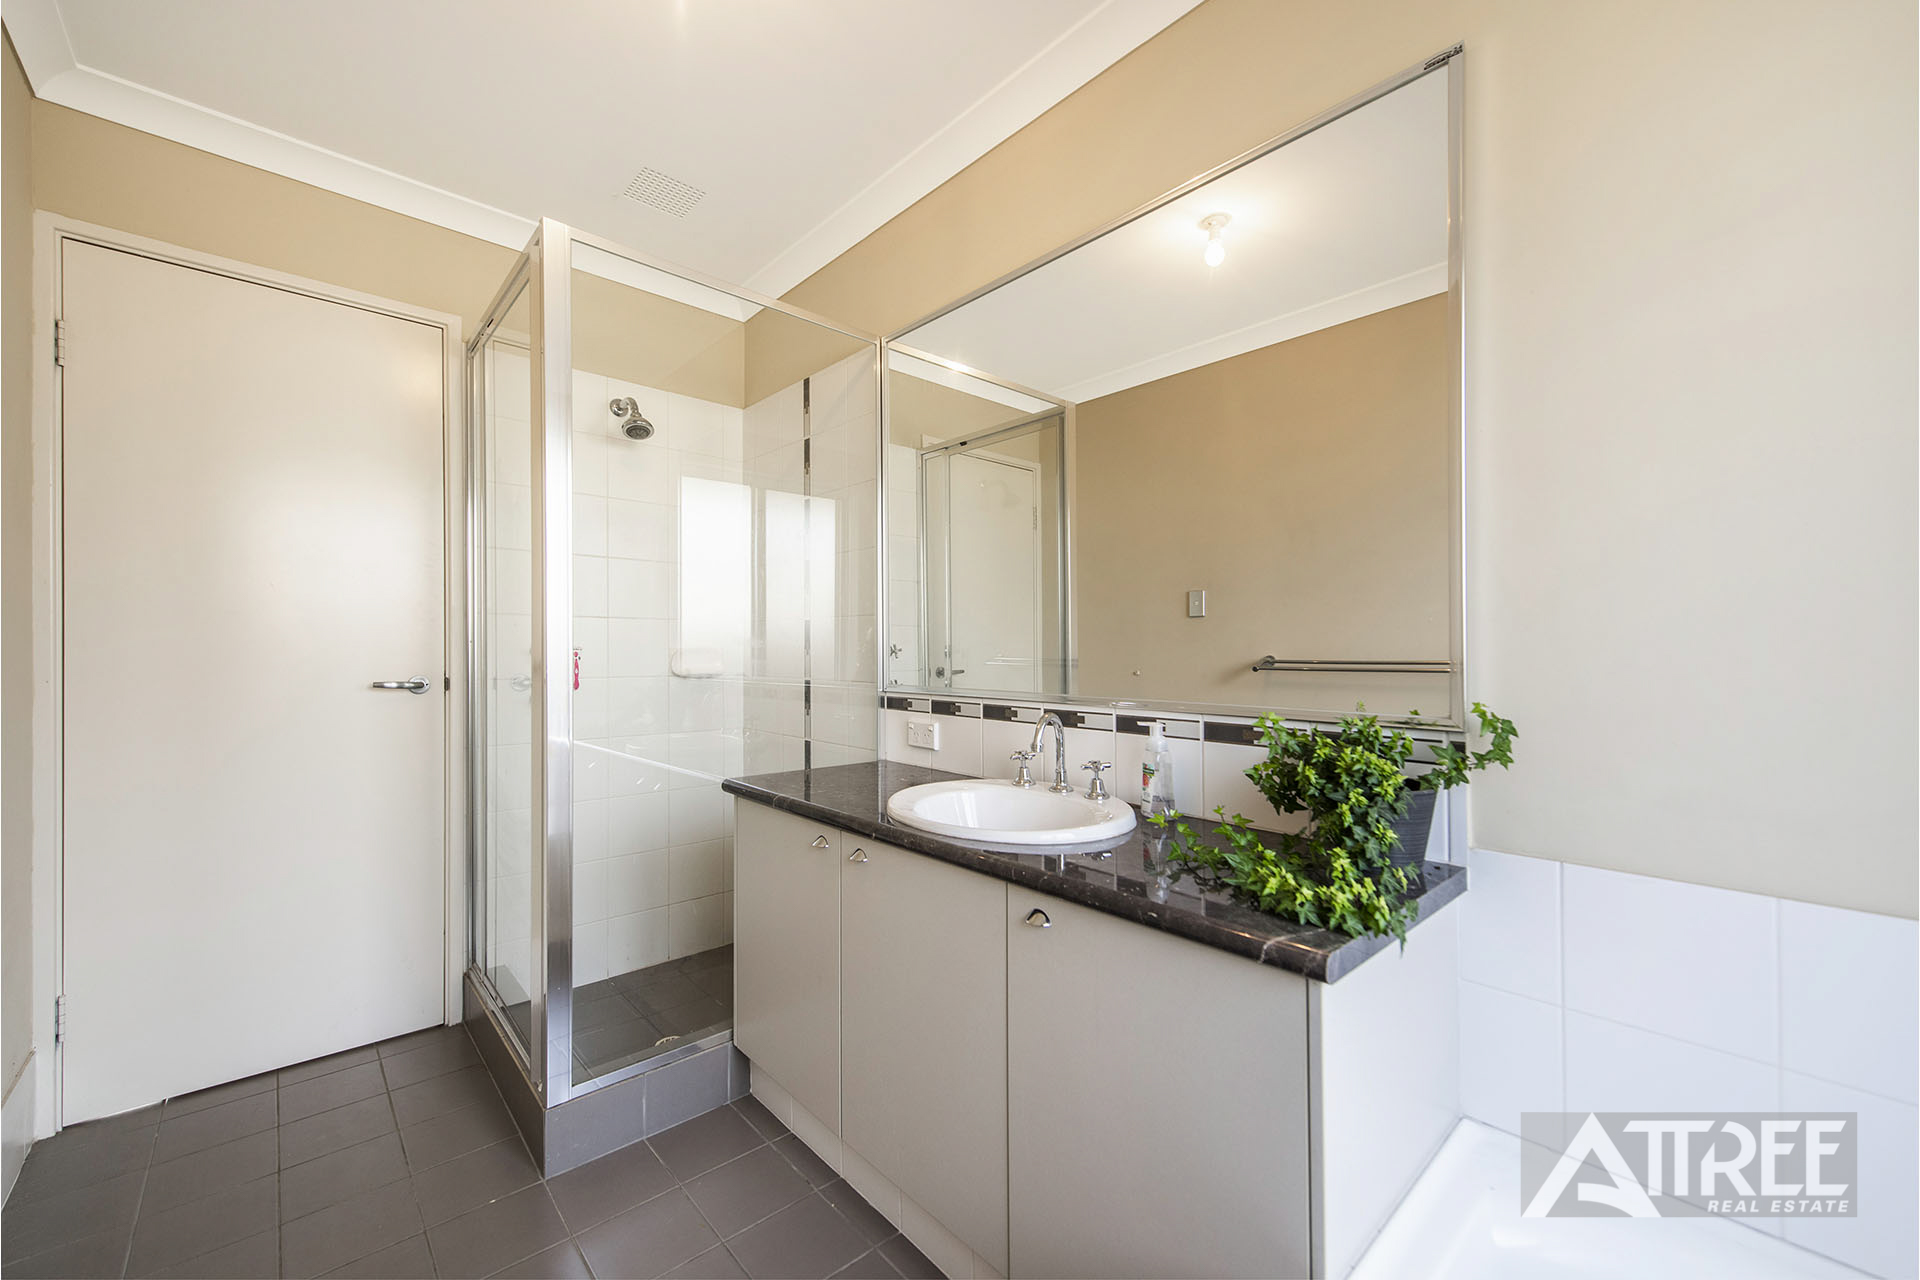 Property for sale in HARRISDALE, 11A Baystone Parade : Attree Real Estate